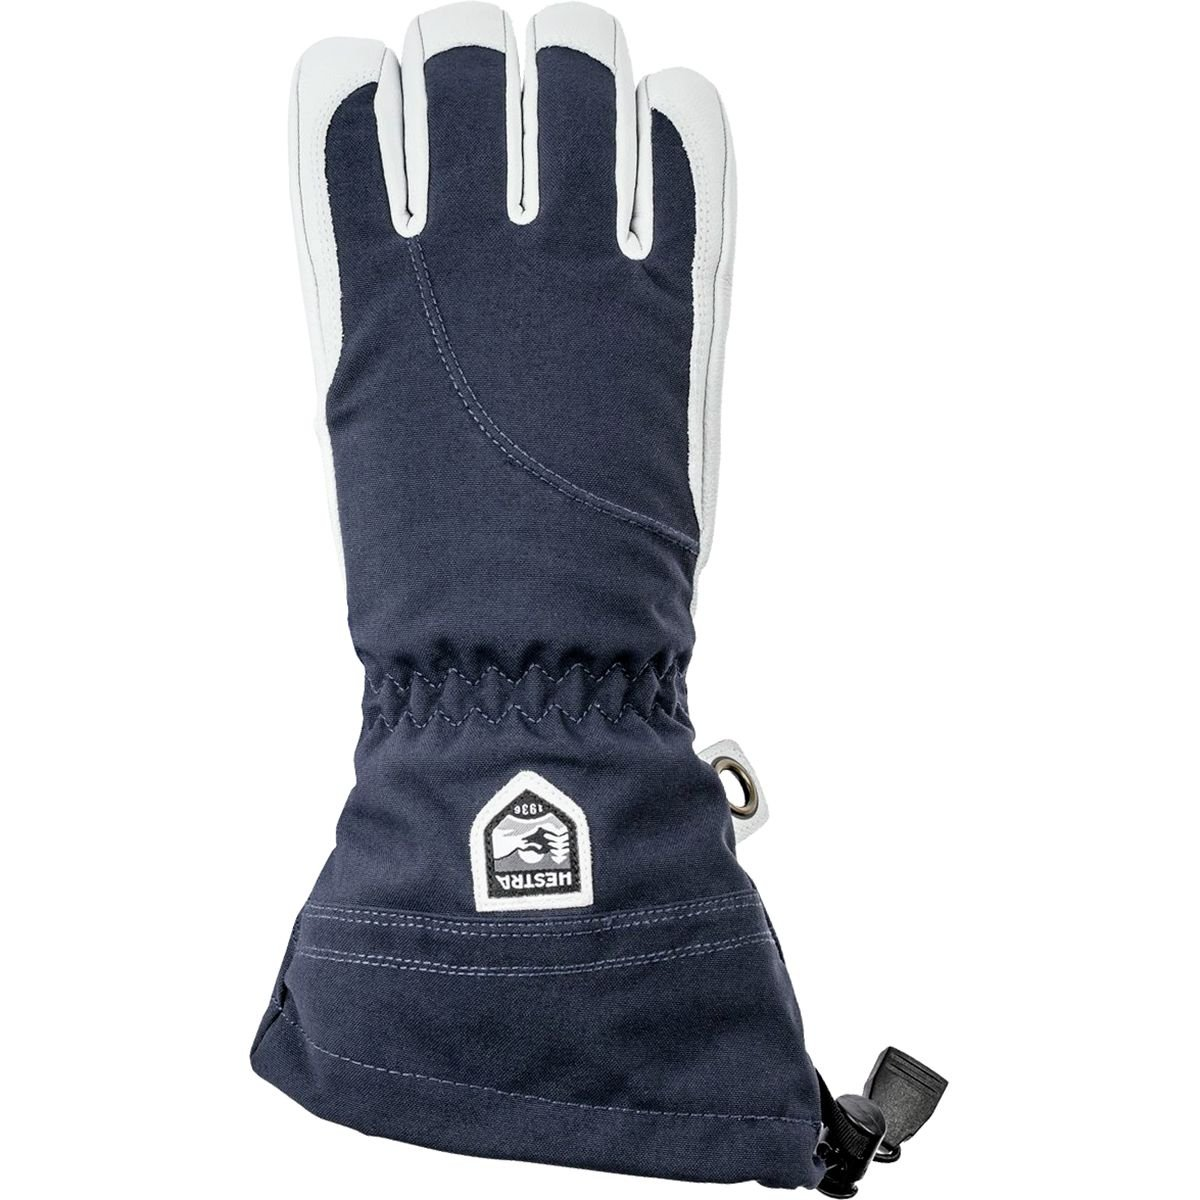 Hestra Women's Heli Gloves - Navy/Off White - 5